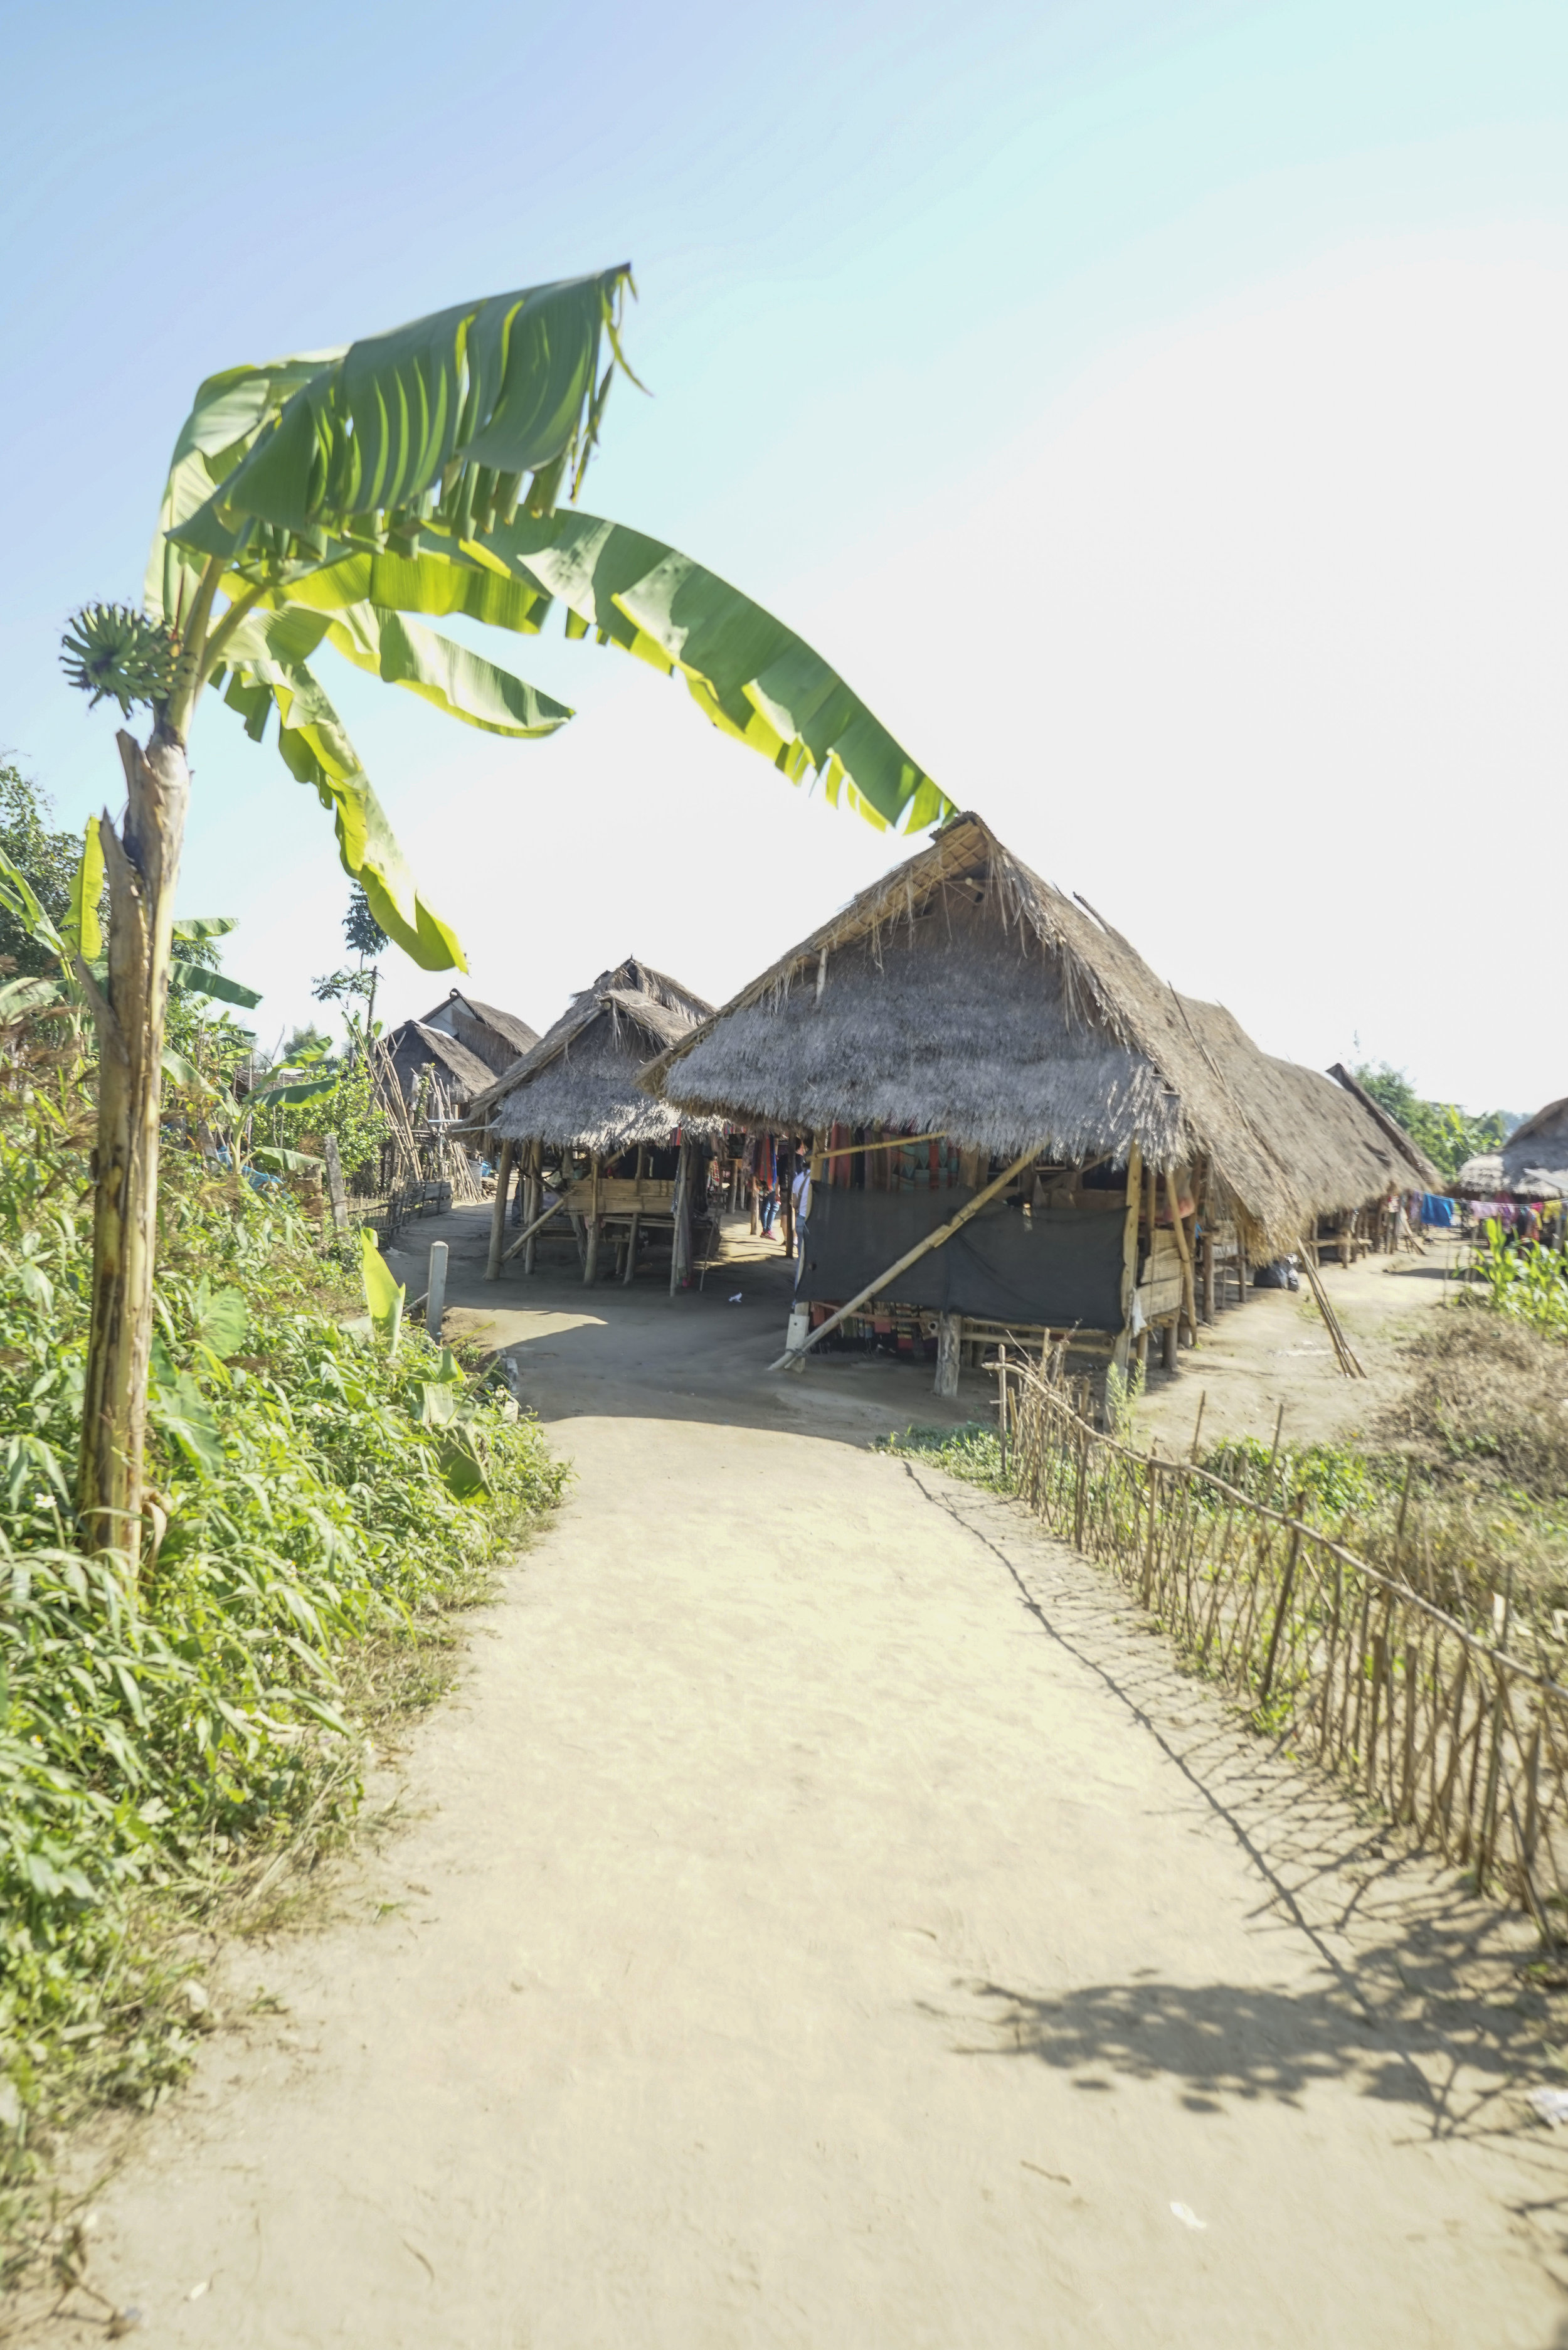 Visiting the Karen Long Neck Village - Shannon Did What?